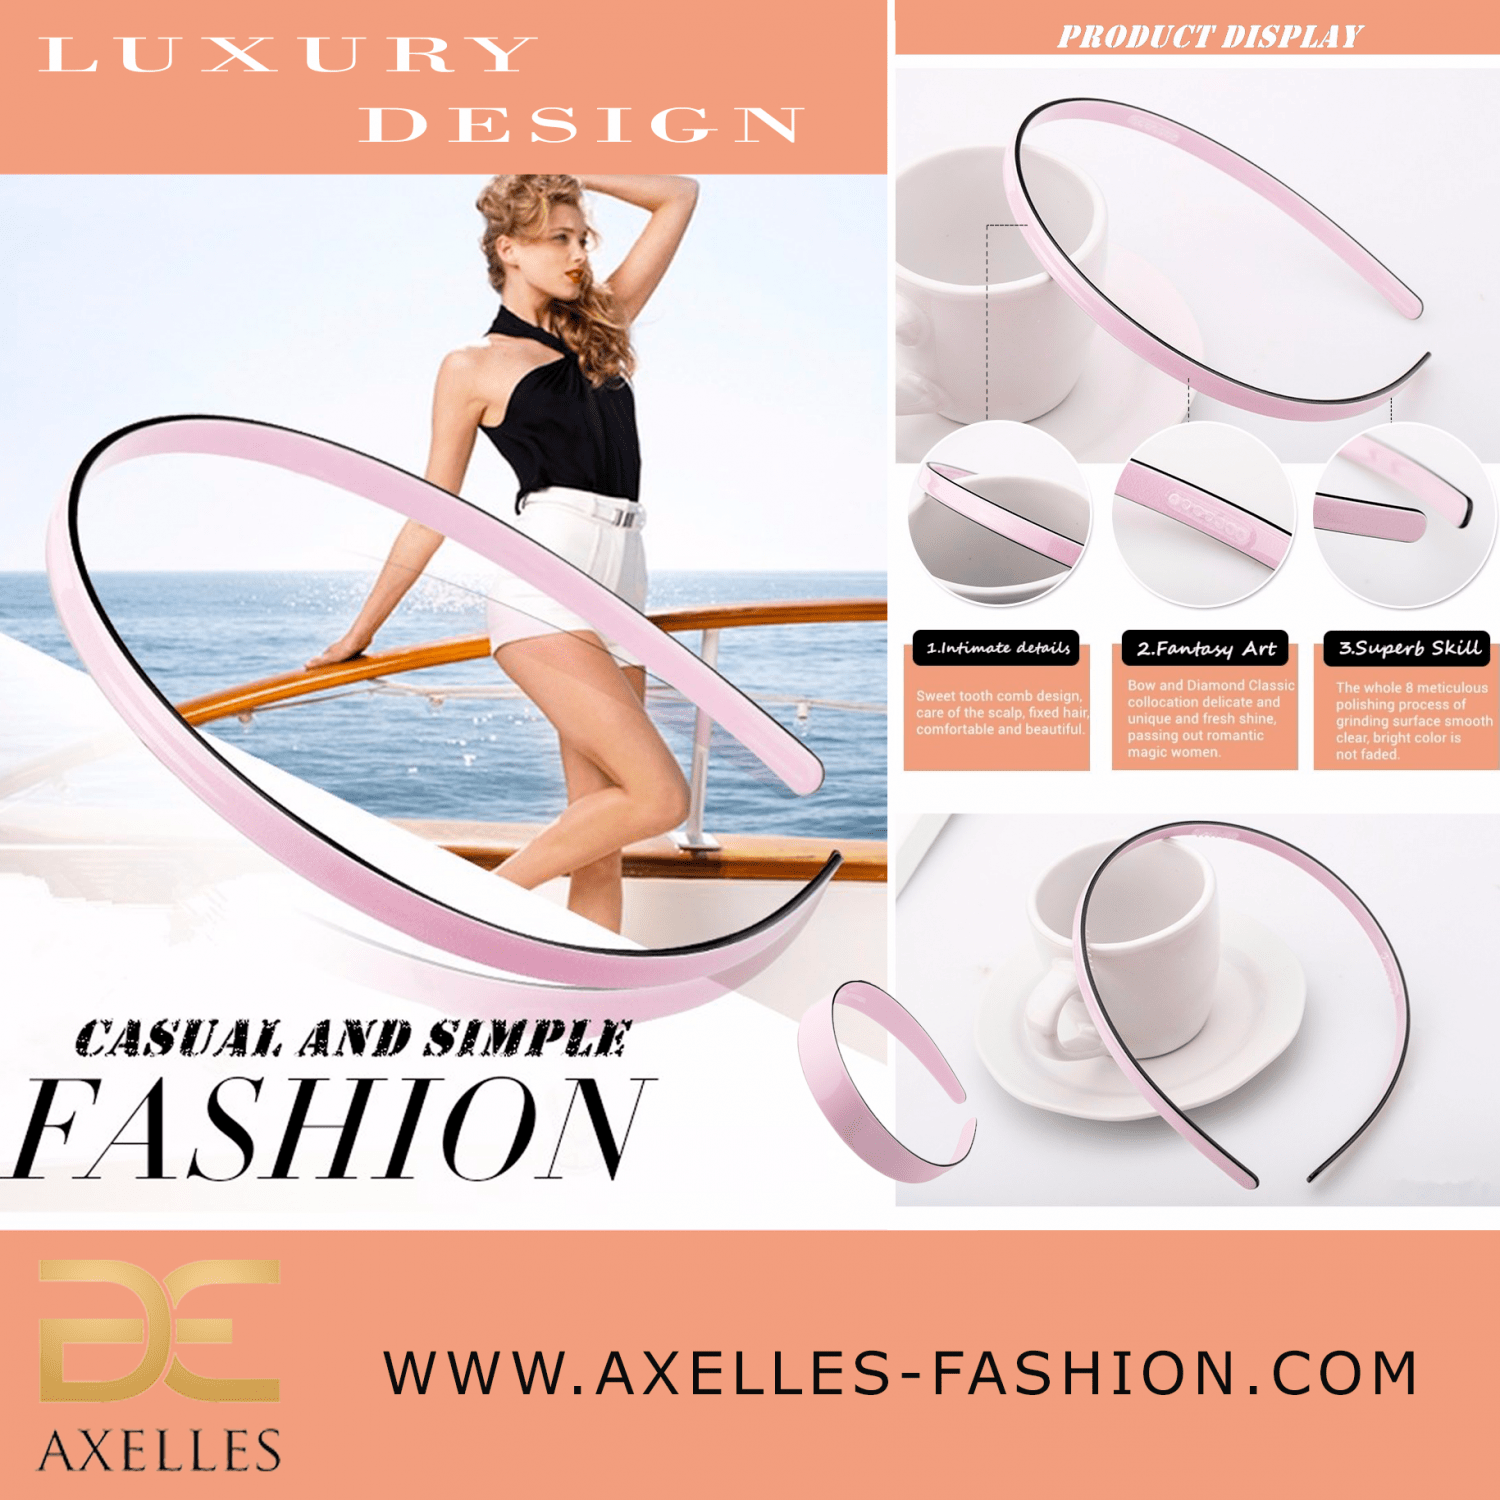 Luxury Hair Accessories Simple collection hairband headband product info www.axelles-fashion.com